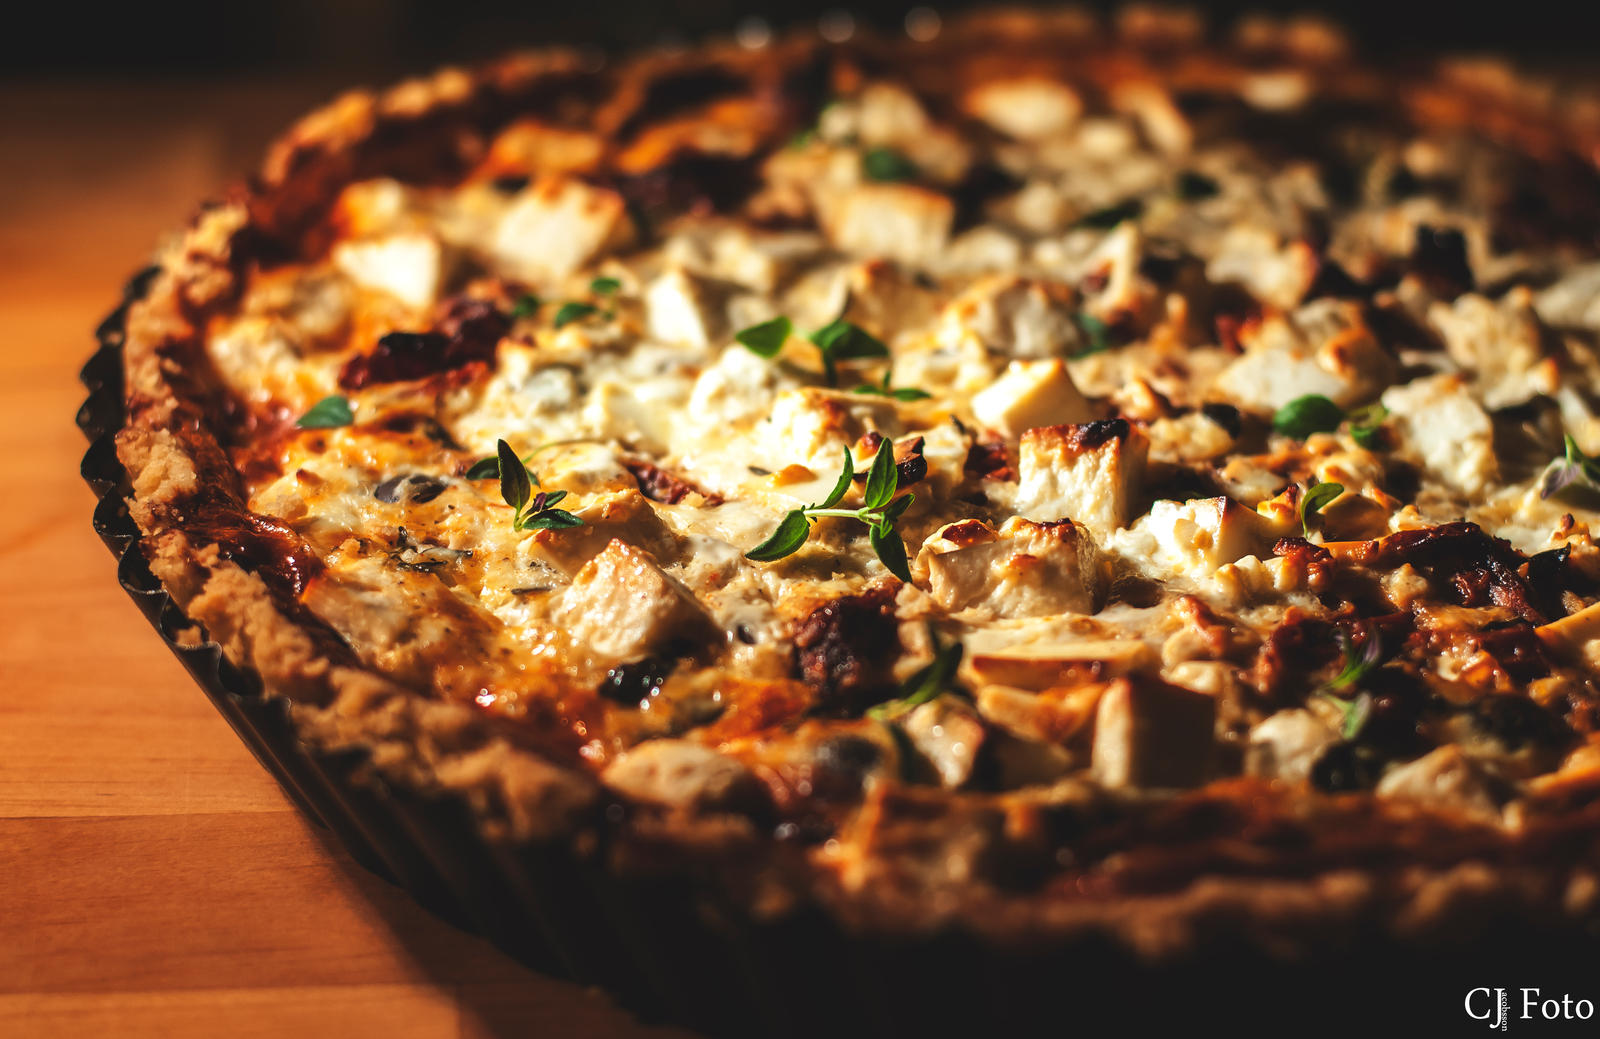 Pie with feta cheese and sundried tomatoes. by CJacobssonFoto